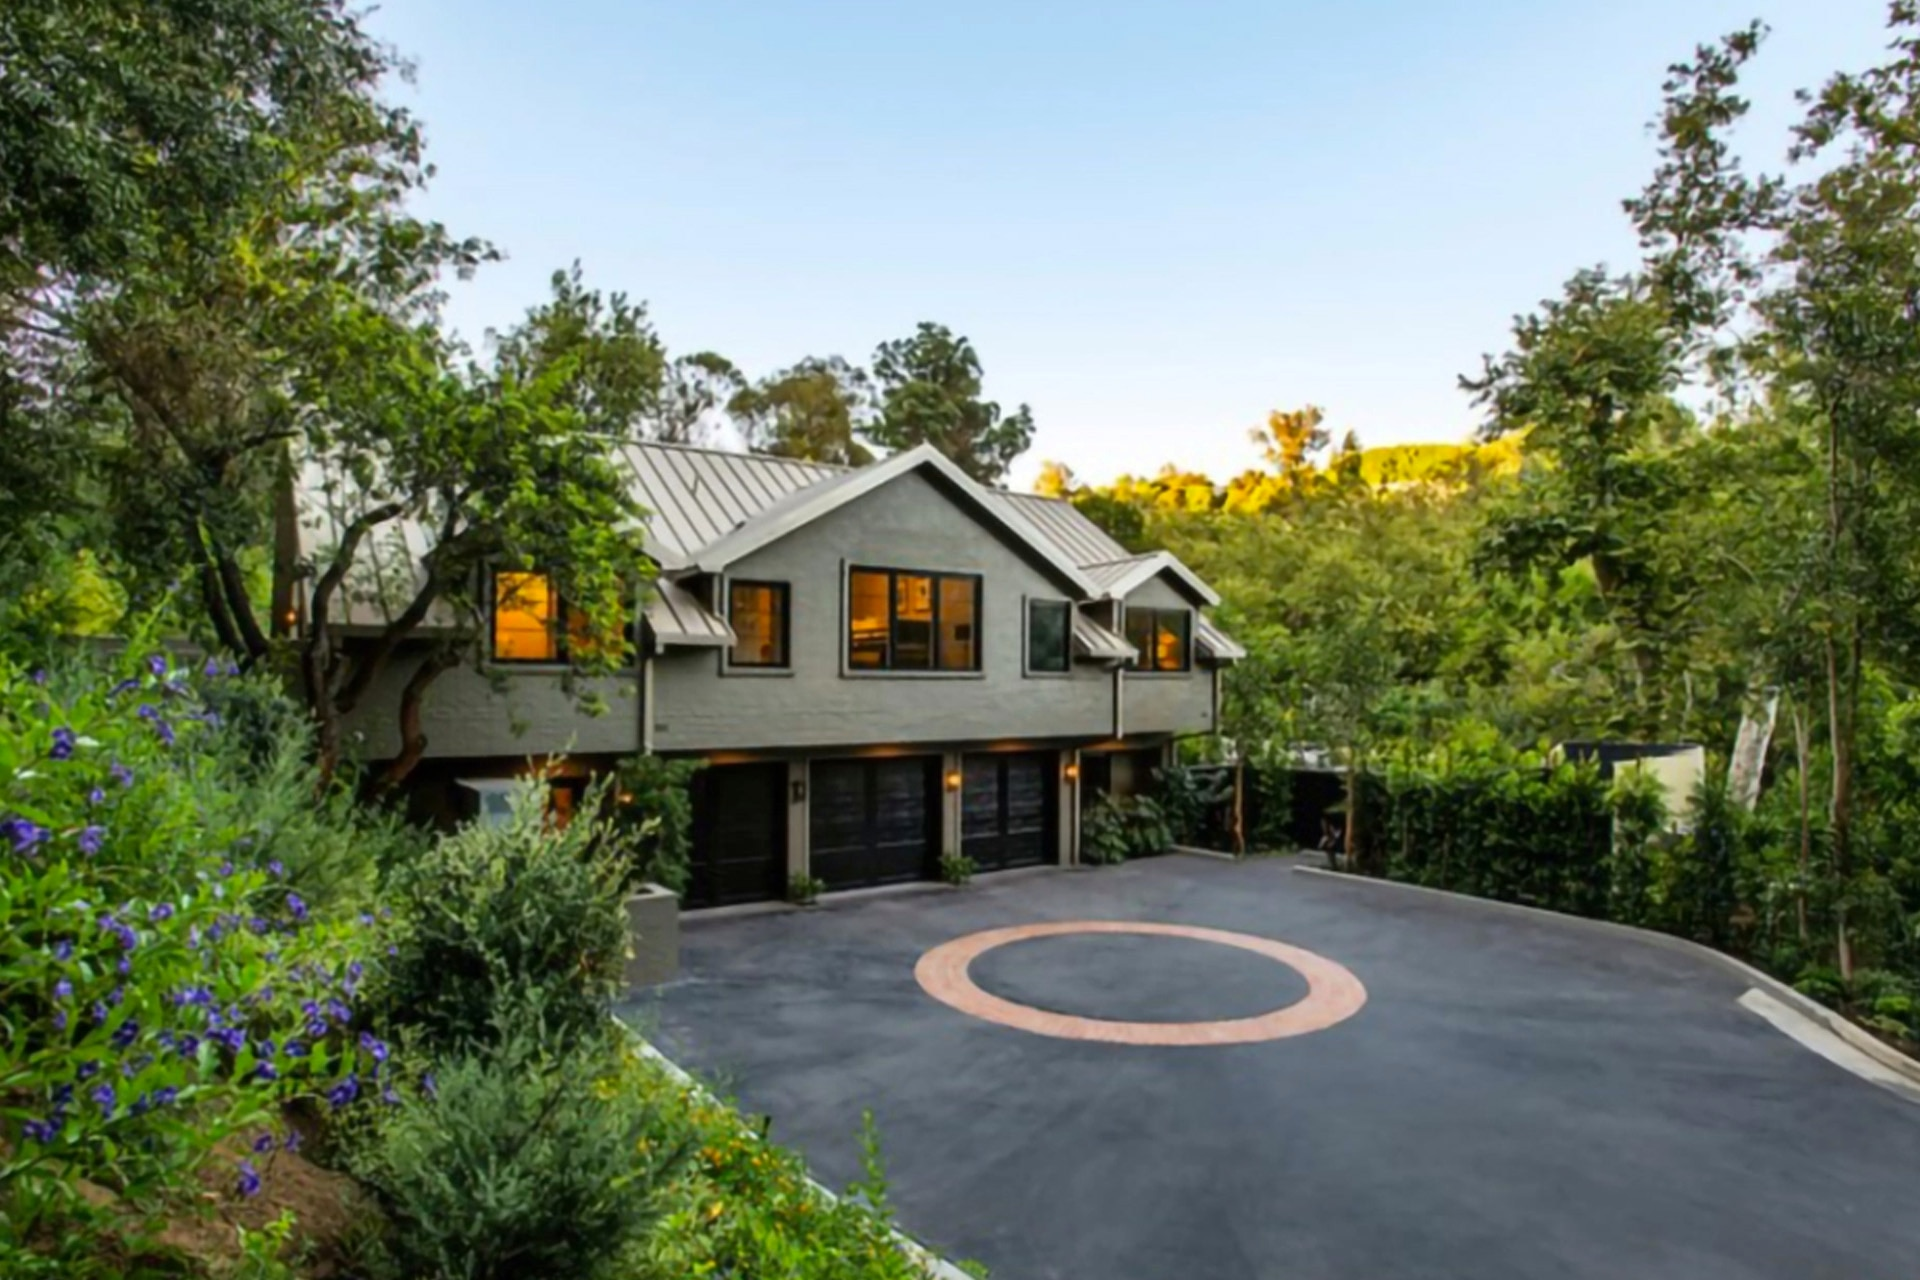 Tour The $20M Stunning Beverly Hills Farmhouse Of Cameron Diaz And Benji Madden